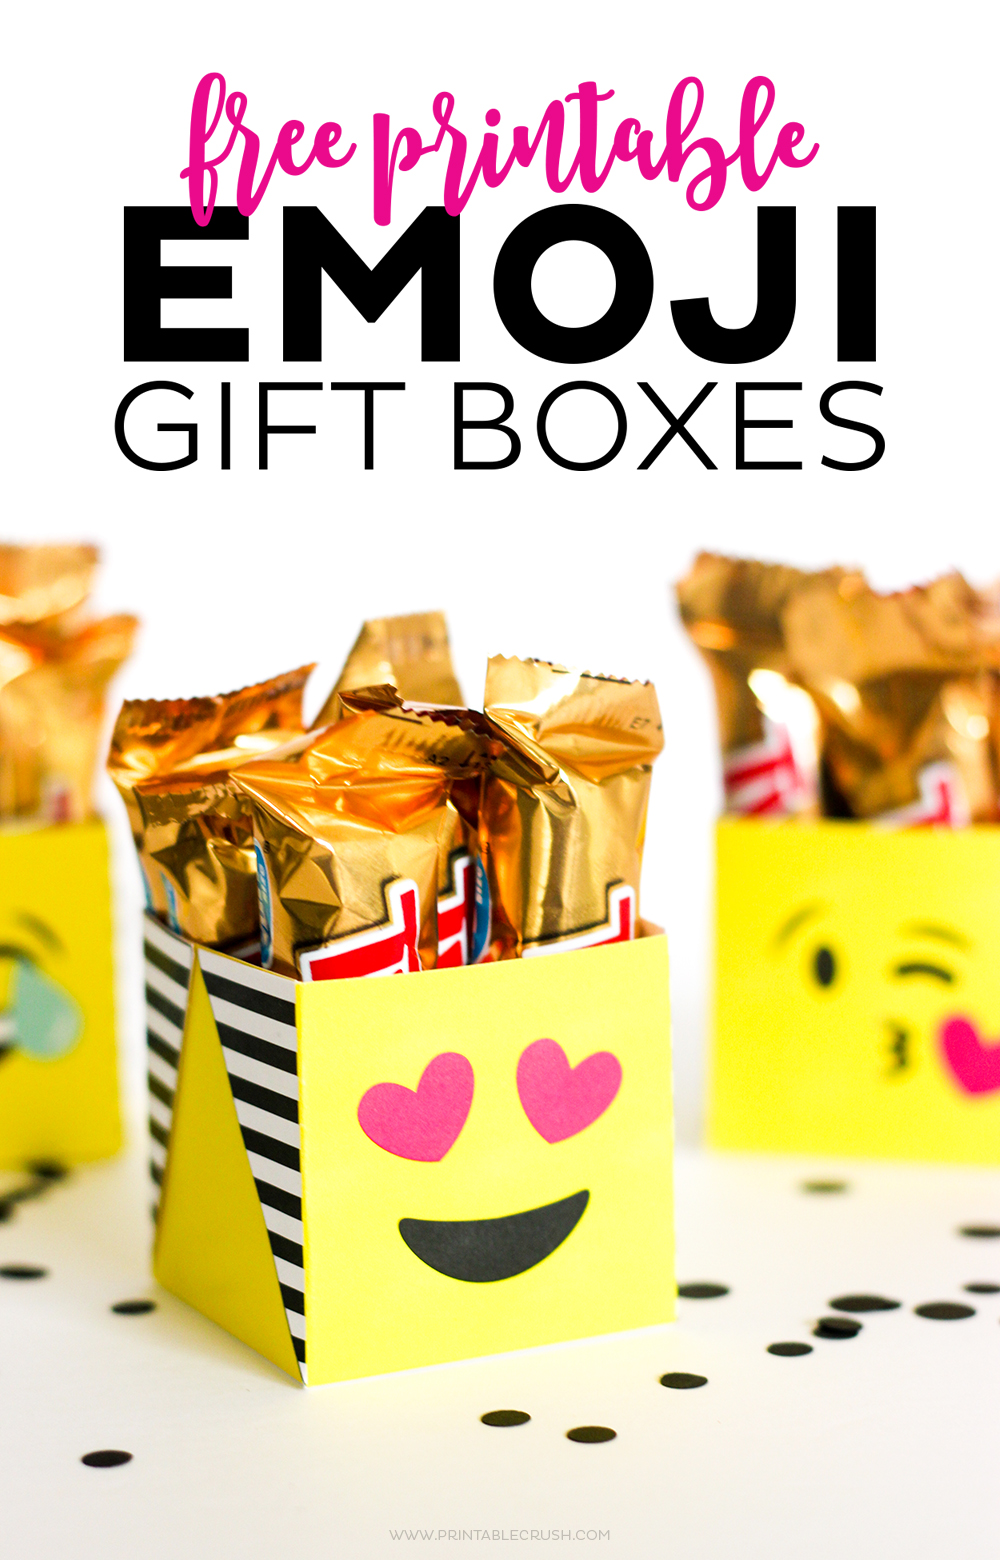 3 emoji gift boxes on white table with black confetti perfect for emoji gifts